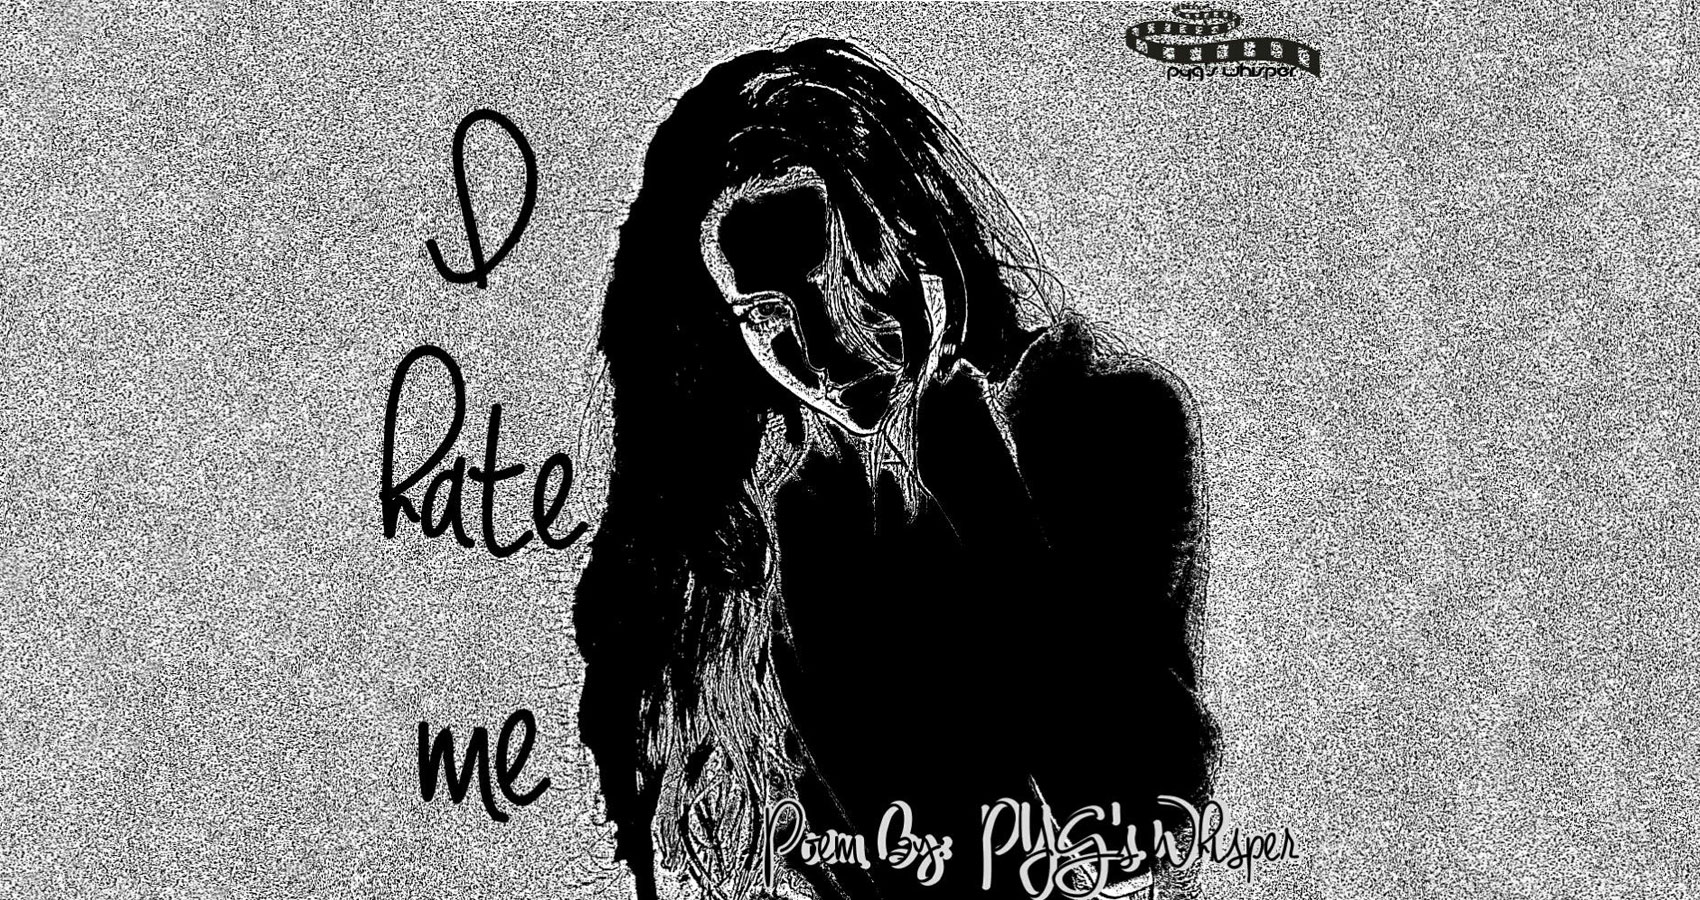 I Hate Me written by PYG's Whisper at Spillwords.com